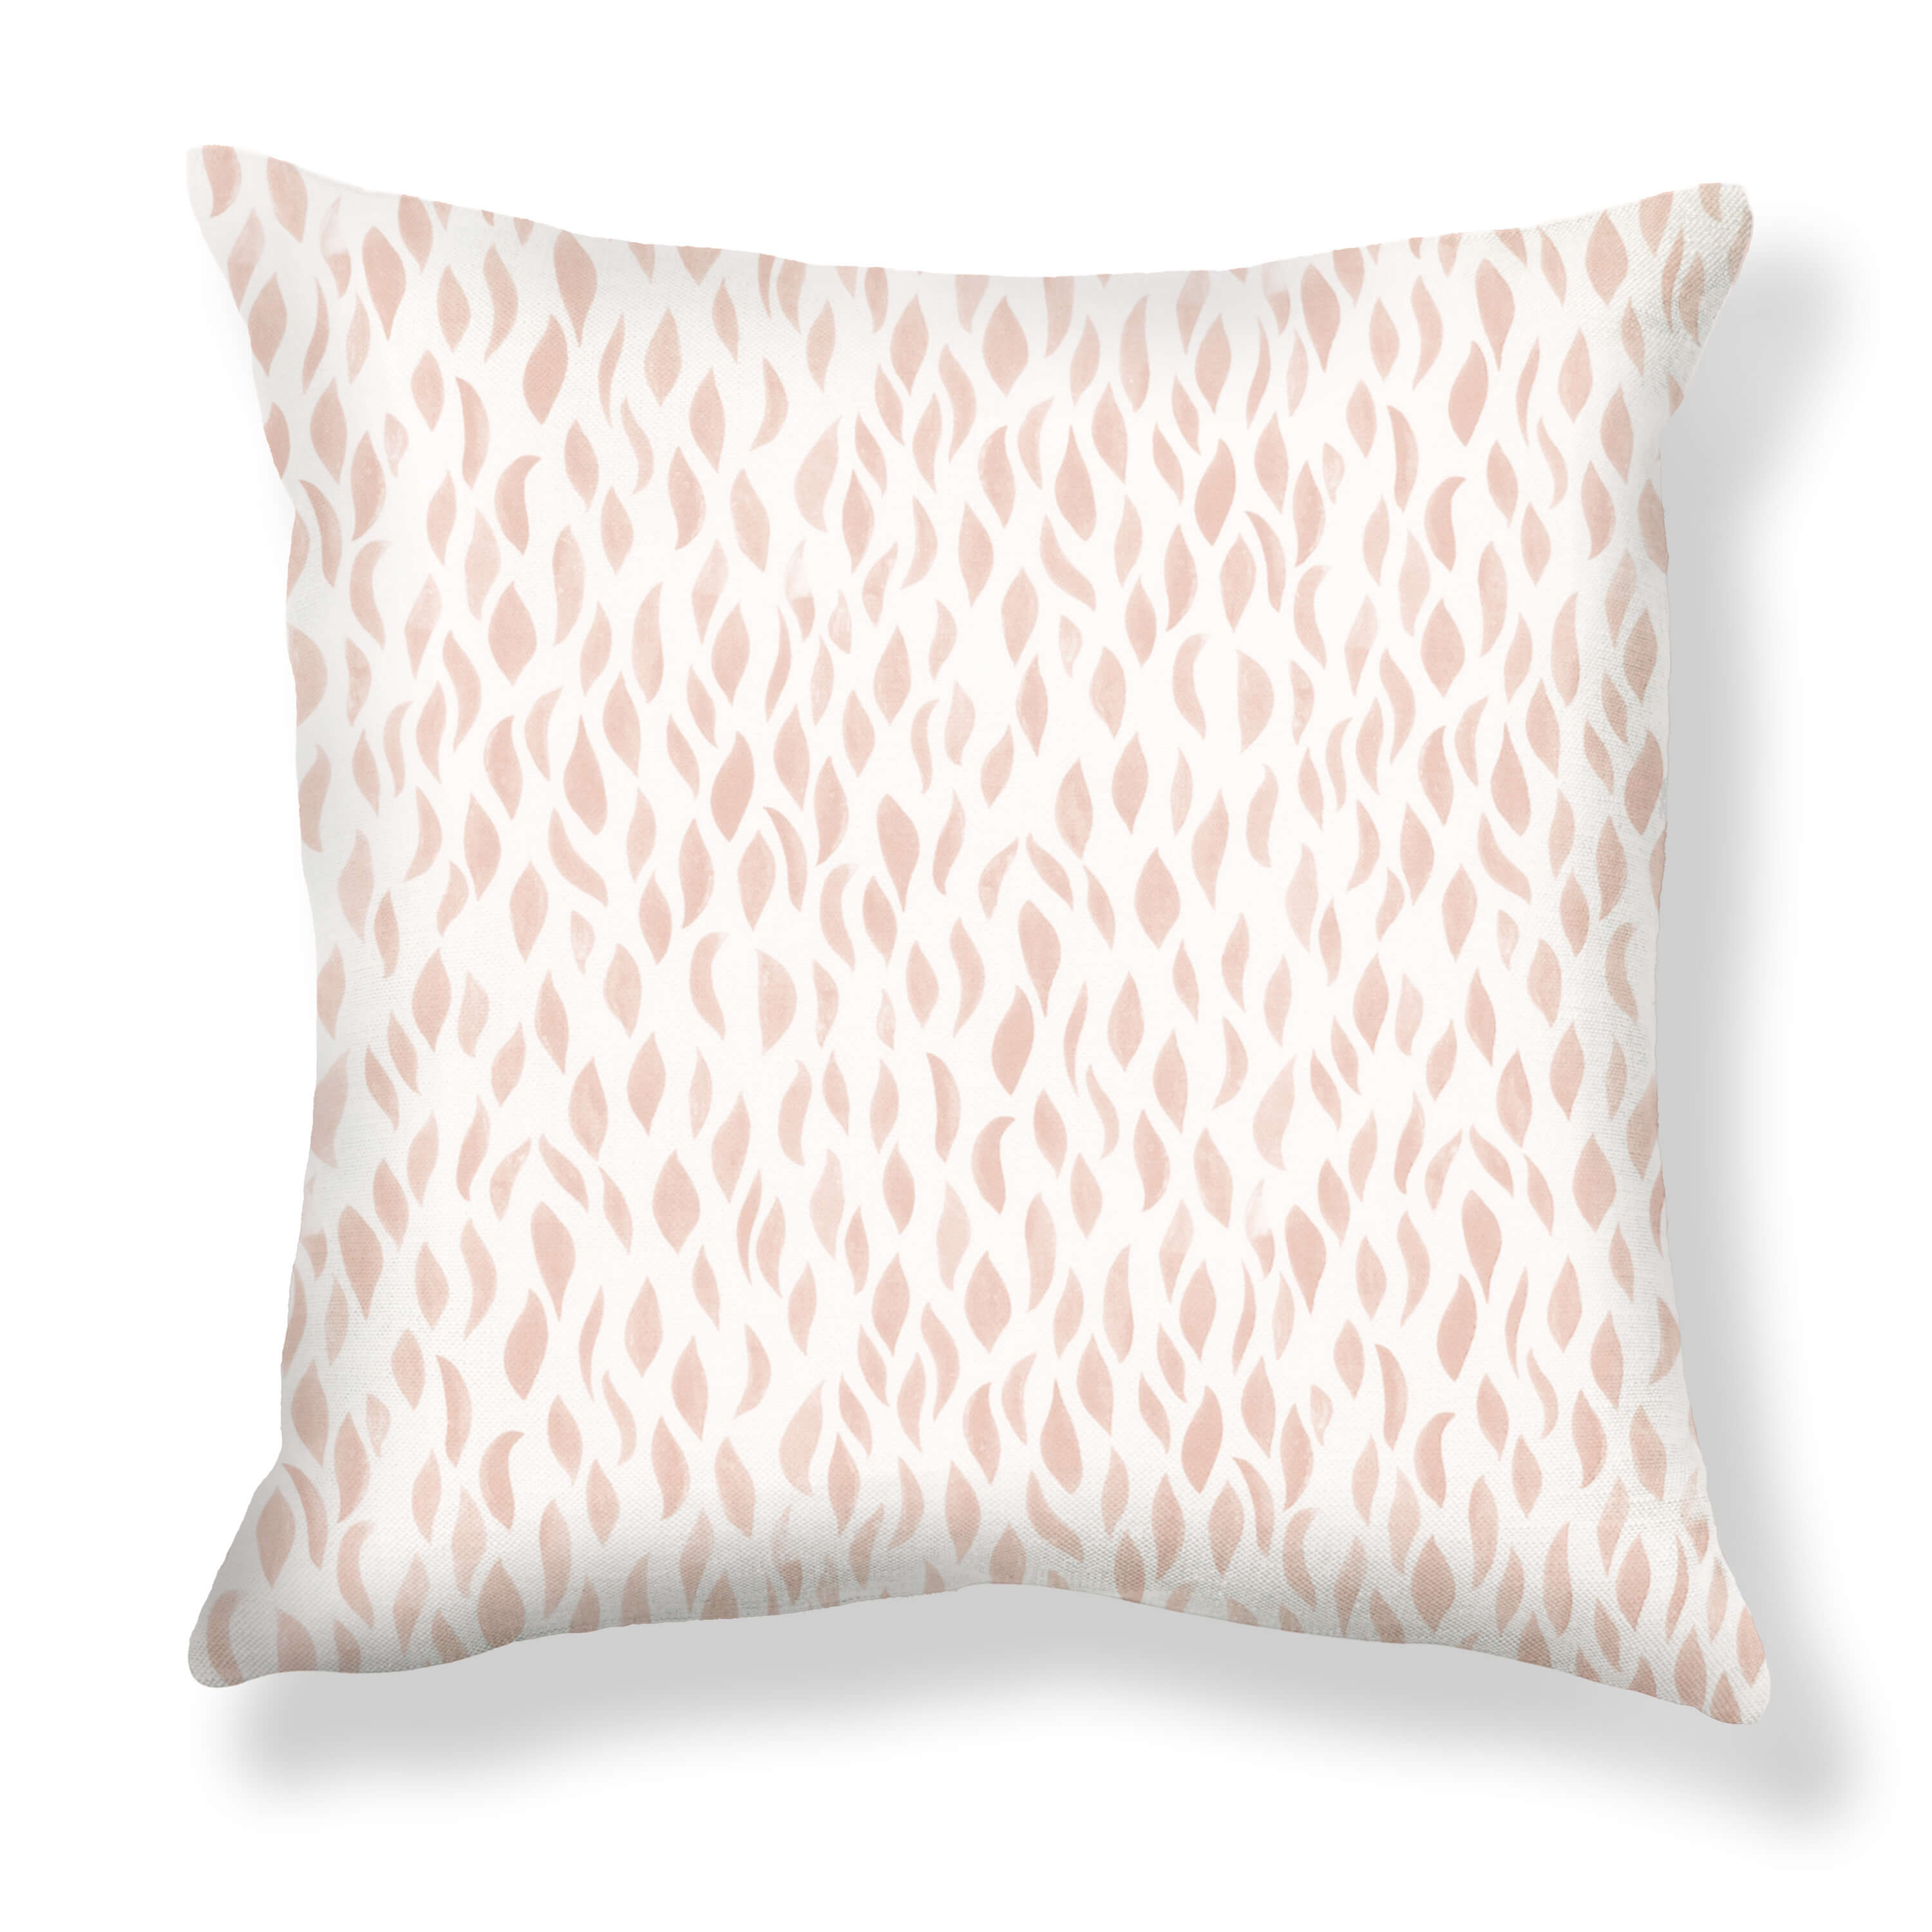 Petals Pillows in Blush